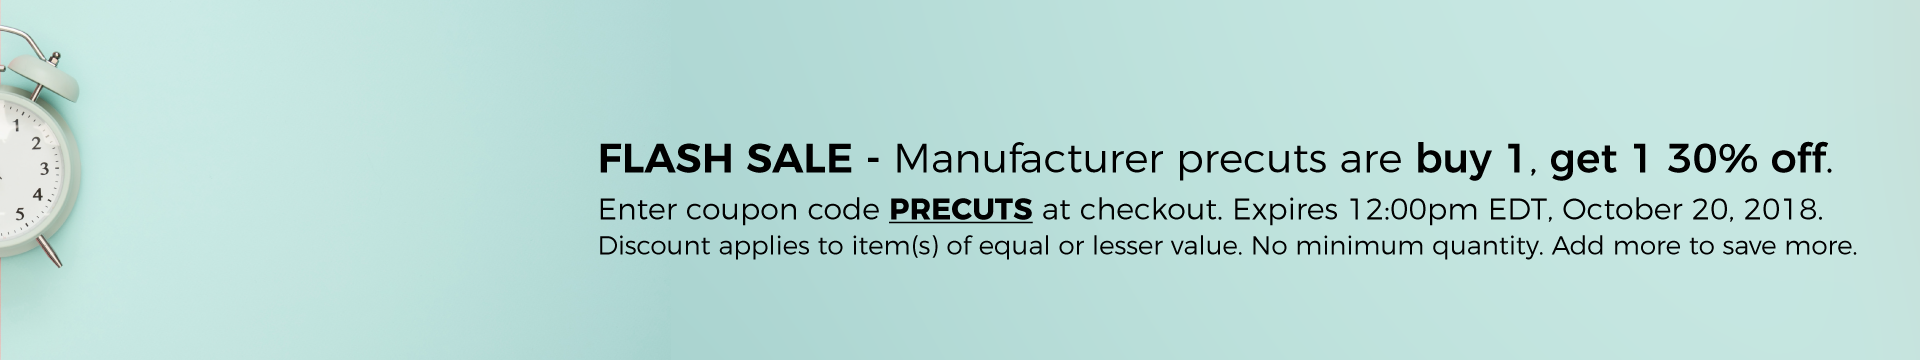 Manufacturer precuts are buy 1, get 1 30% off with coupon code PRECUTS. Discount applies to item(s) of equal or lesser value. Expires 10/20/18 at 12:00pm EDT.